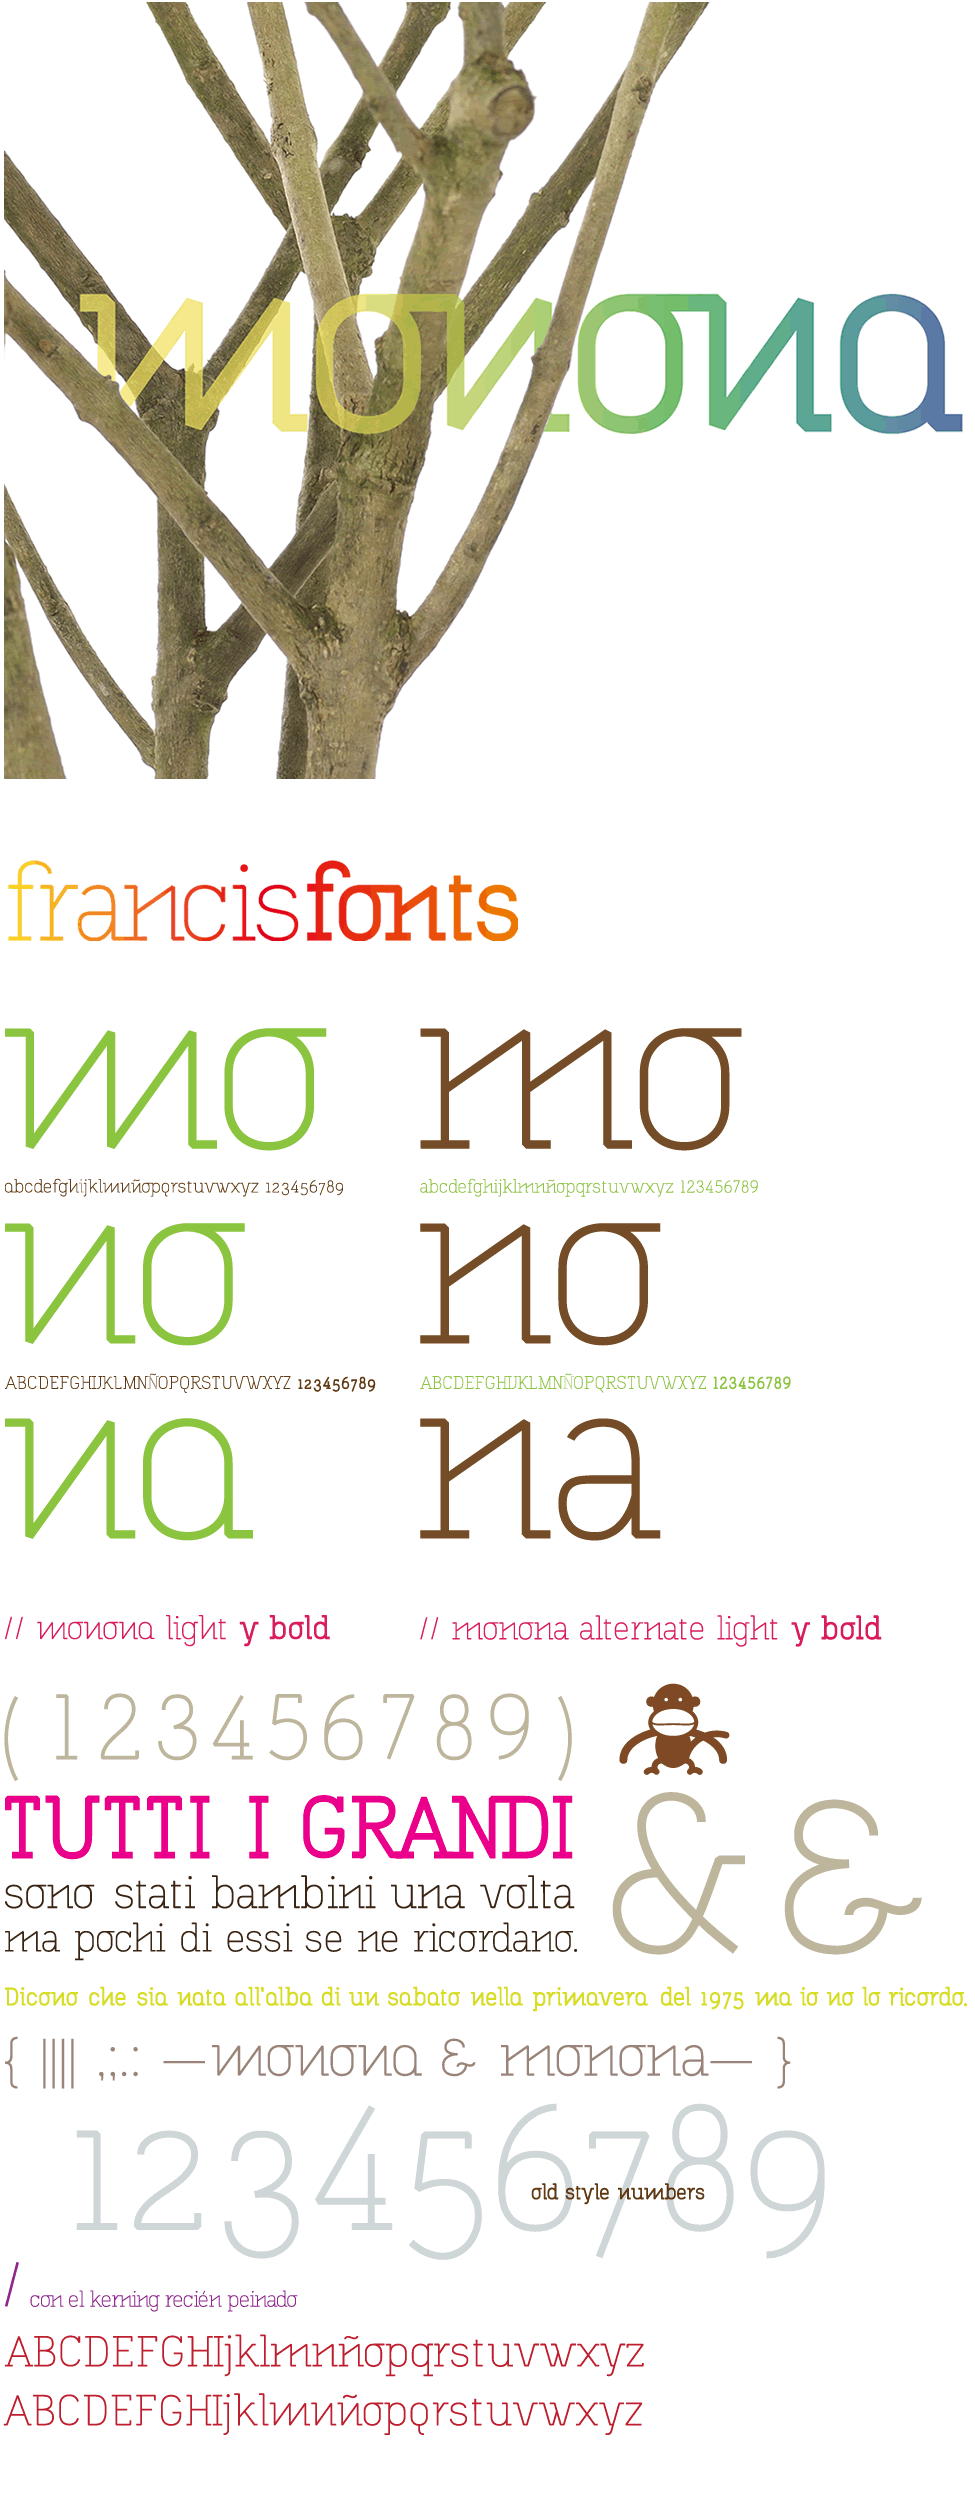 FrancisFonts_monona